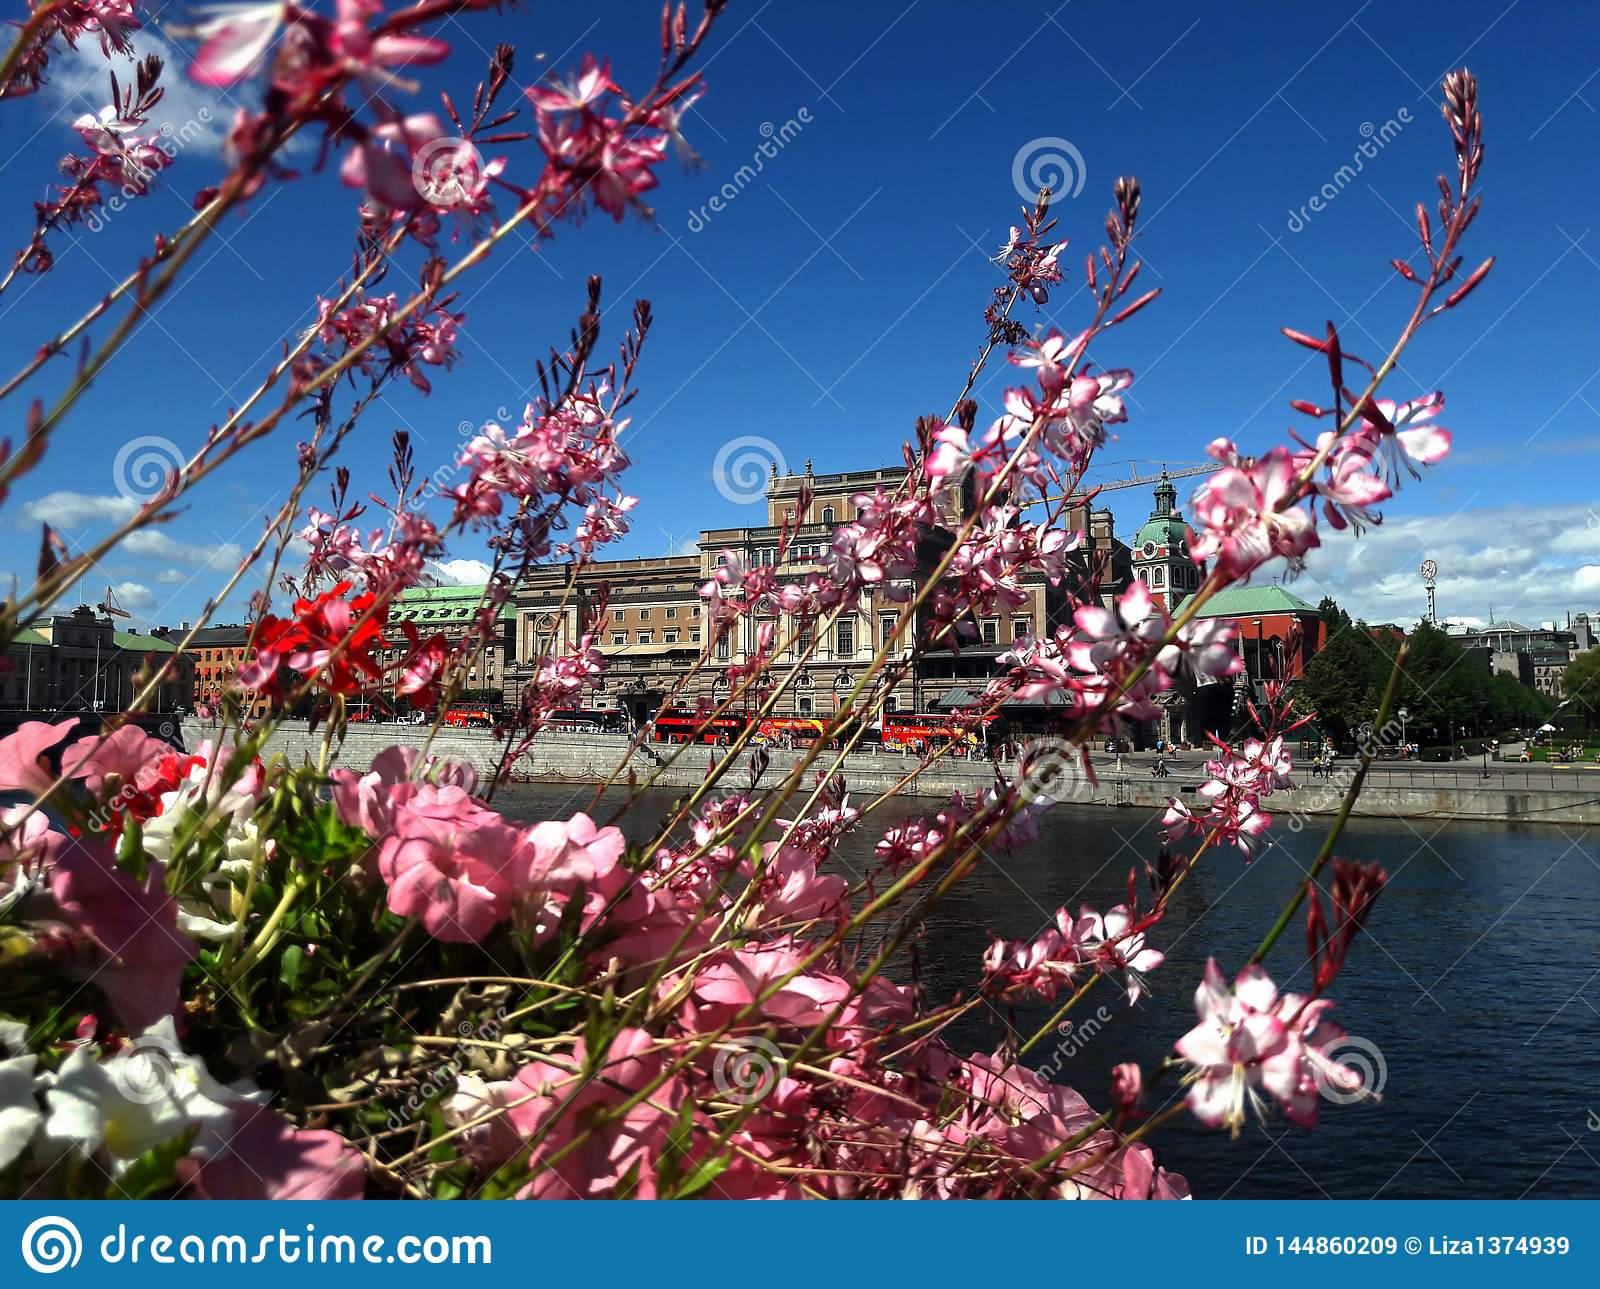 Flowers against the lake and the city, Stockholm background.